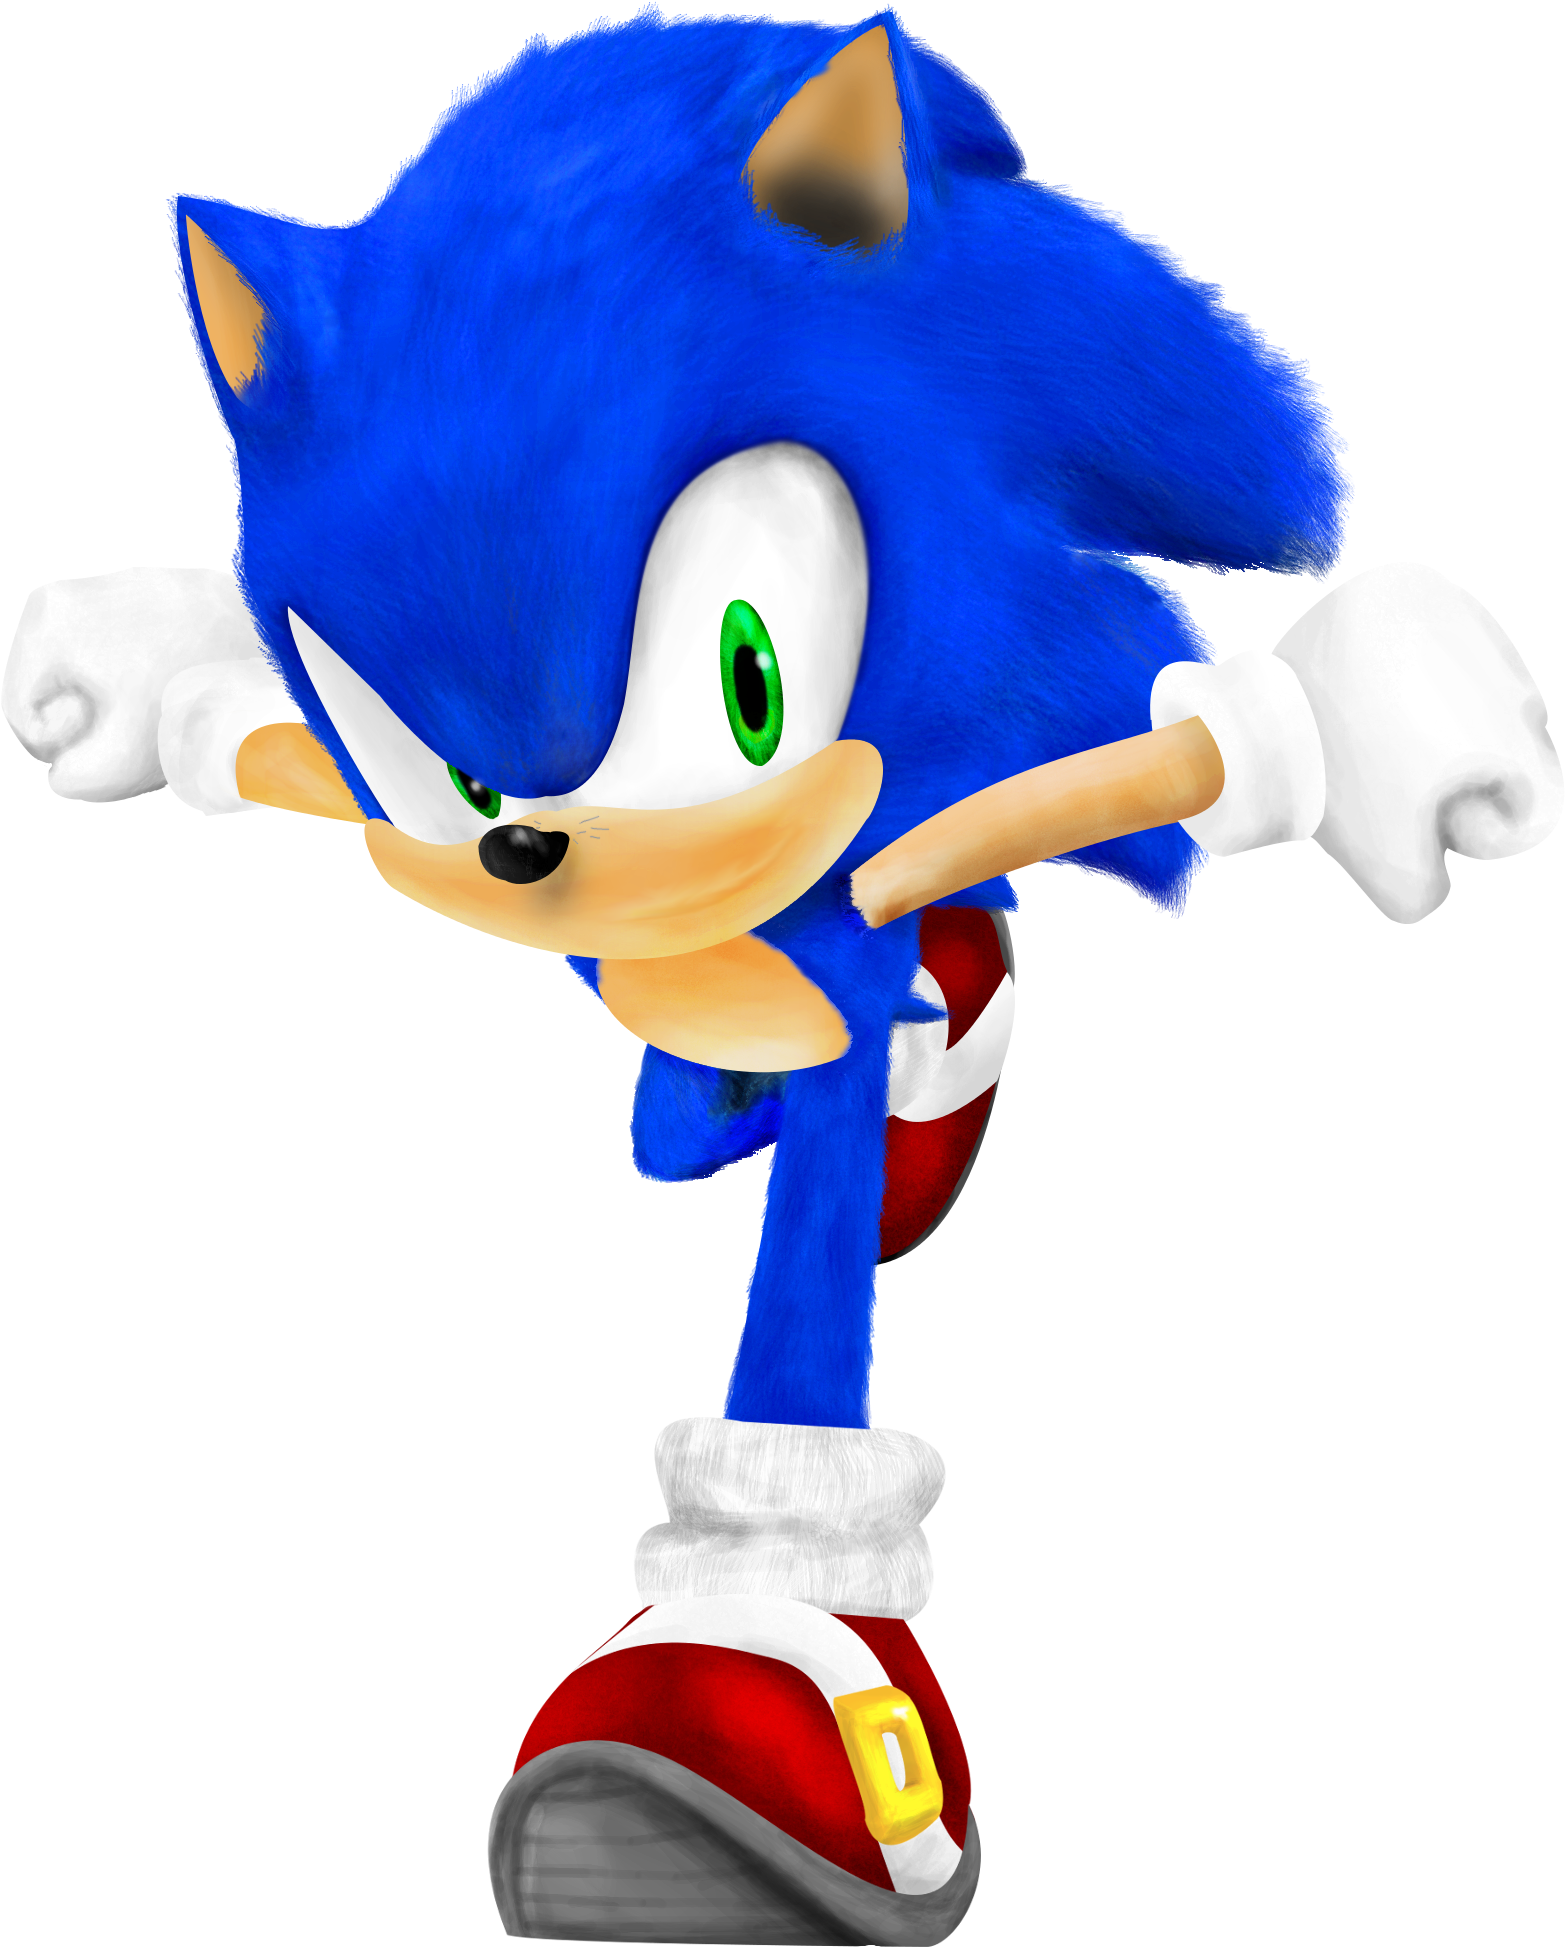 Realistic Sonic By Paleop On Deviantart Realistic Sonic The Hedgehog 1656x2040 Png Clipart Download